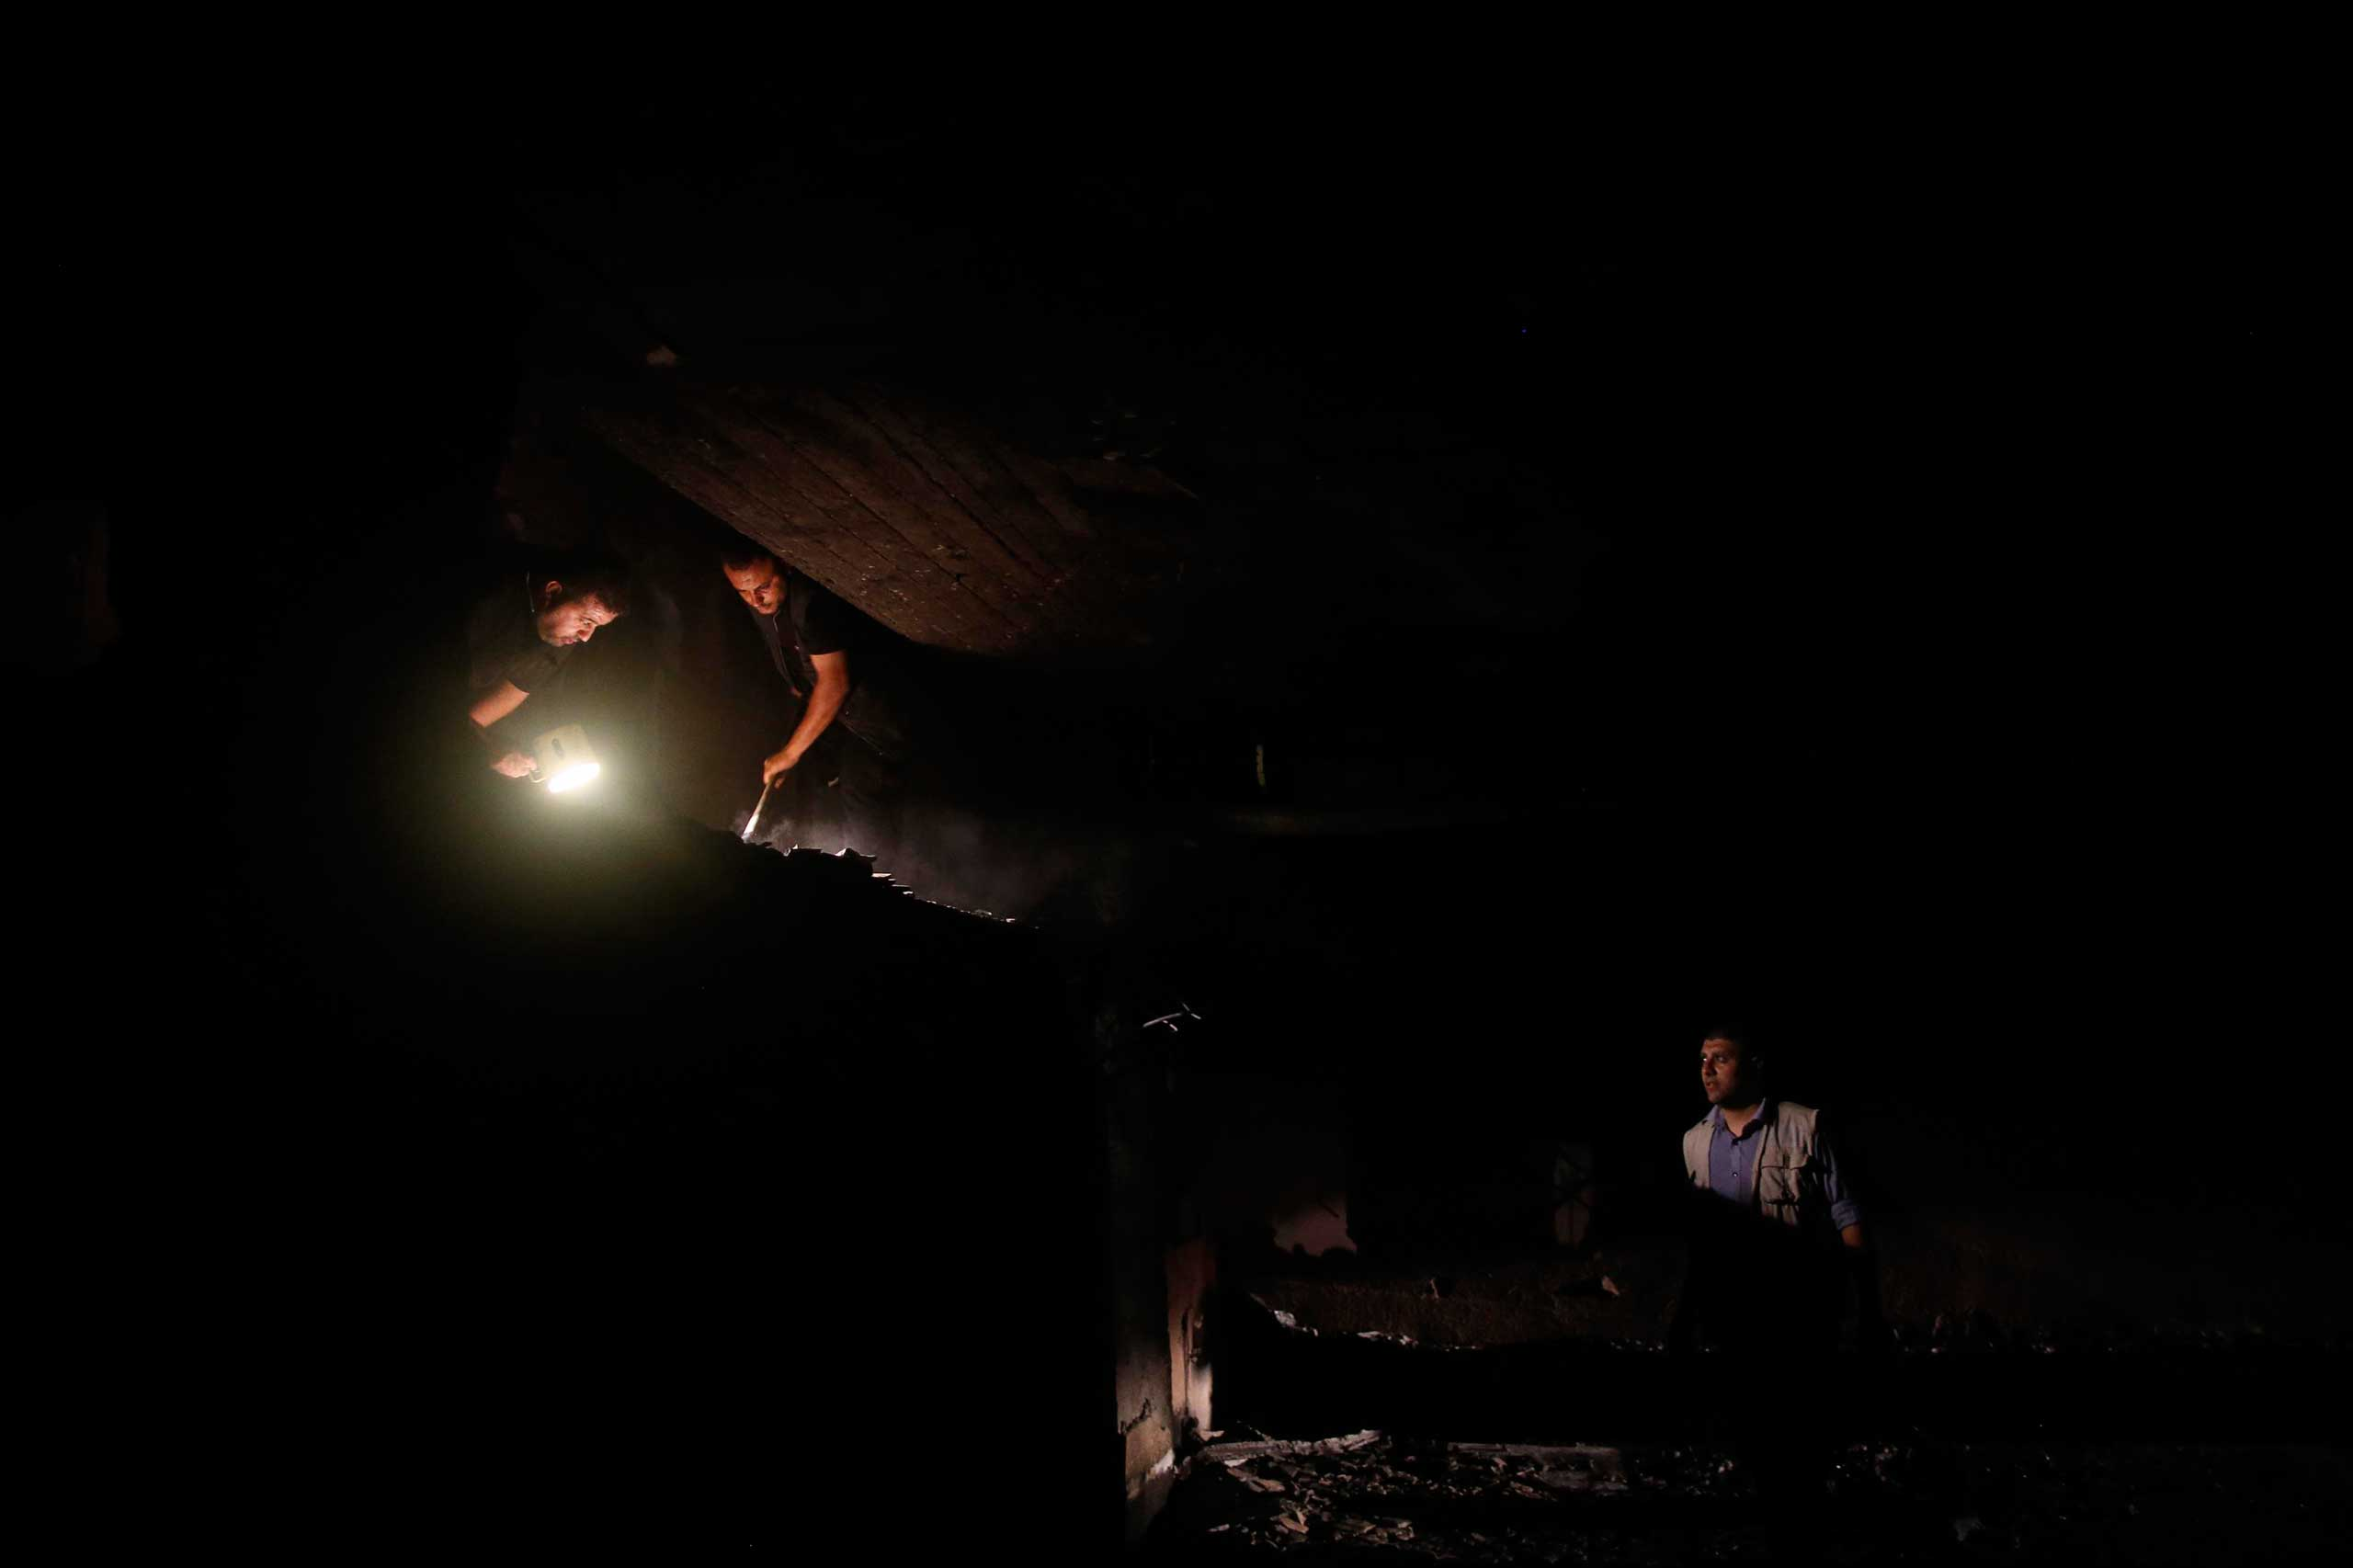 Oct. 7, 2014. Palestinian policemen inspect the damage at the French Culture Center after a fire burned part of the compound following two explosions which were heard at the site in Gaza city. The Gaza interior ministry said it was checking the causes of the incident.